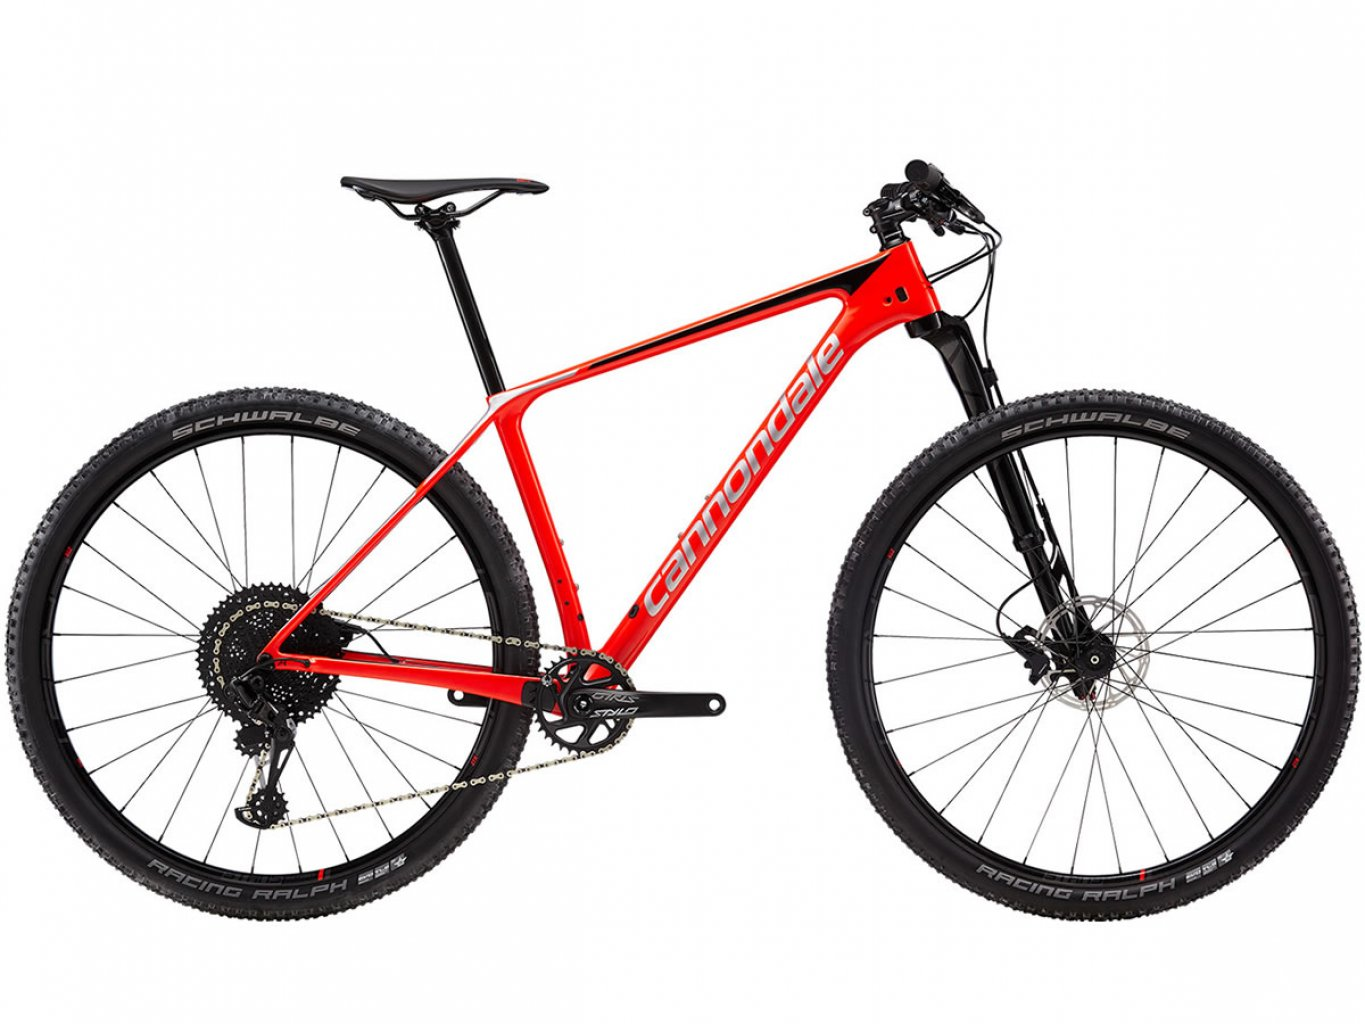 CANNONDALE F-Si 29 Crb 3 ARD 2019